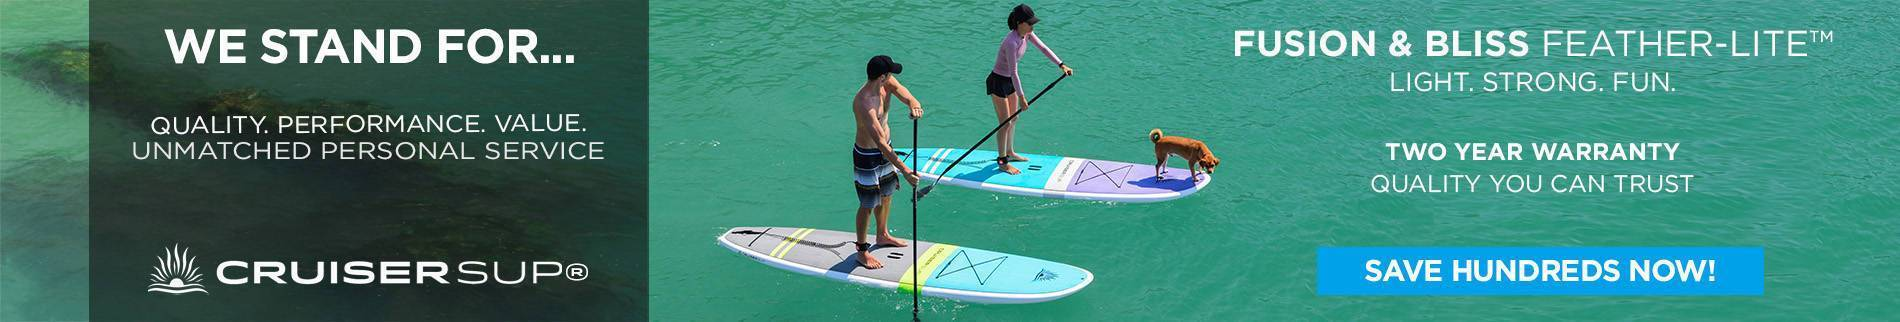 Paddle Board Users 190 - 220 lbs